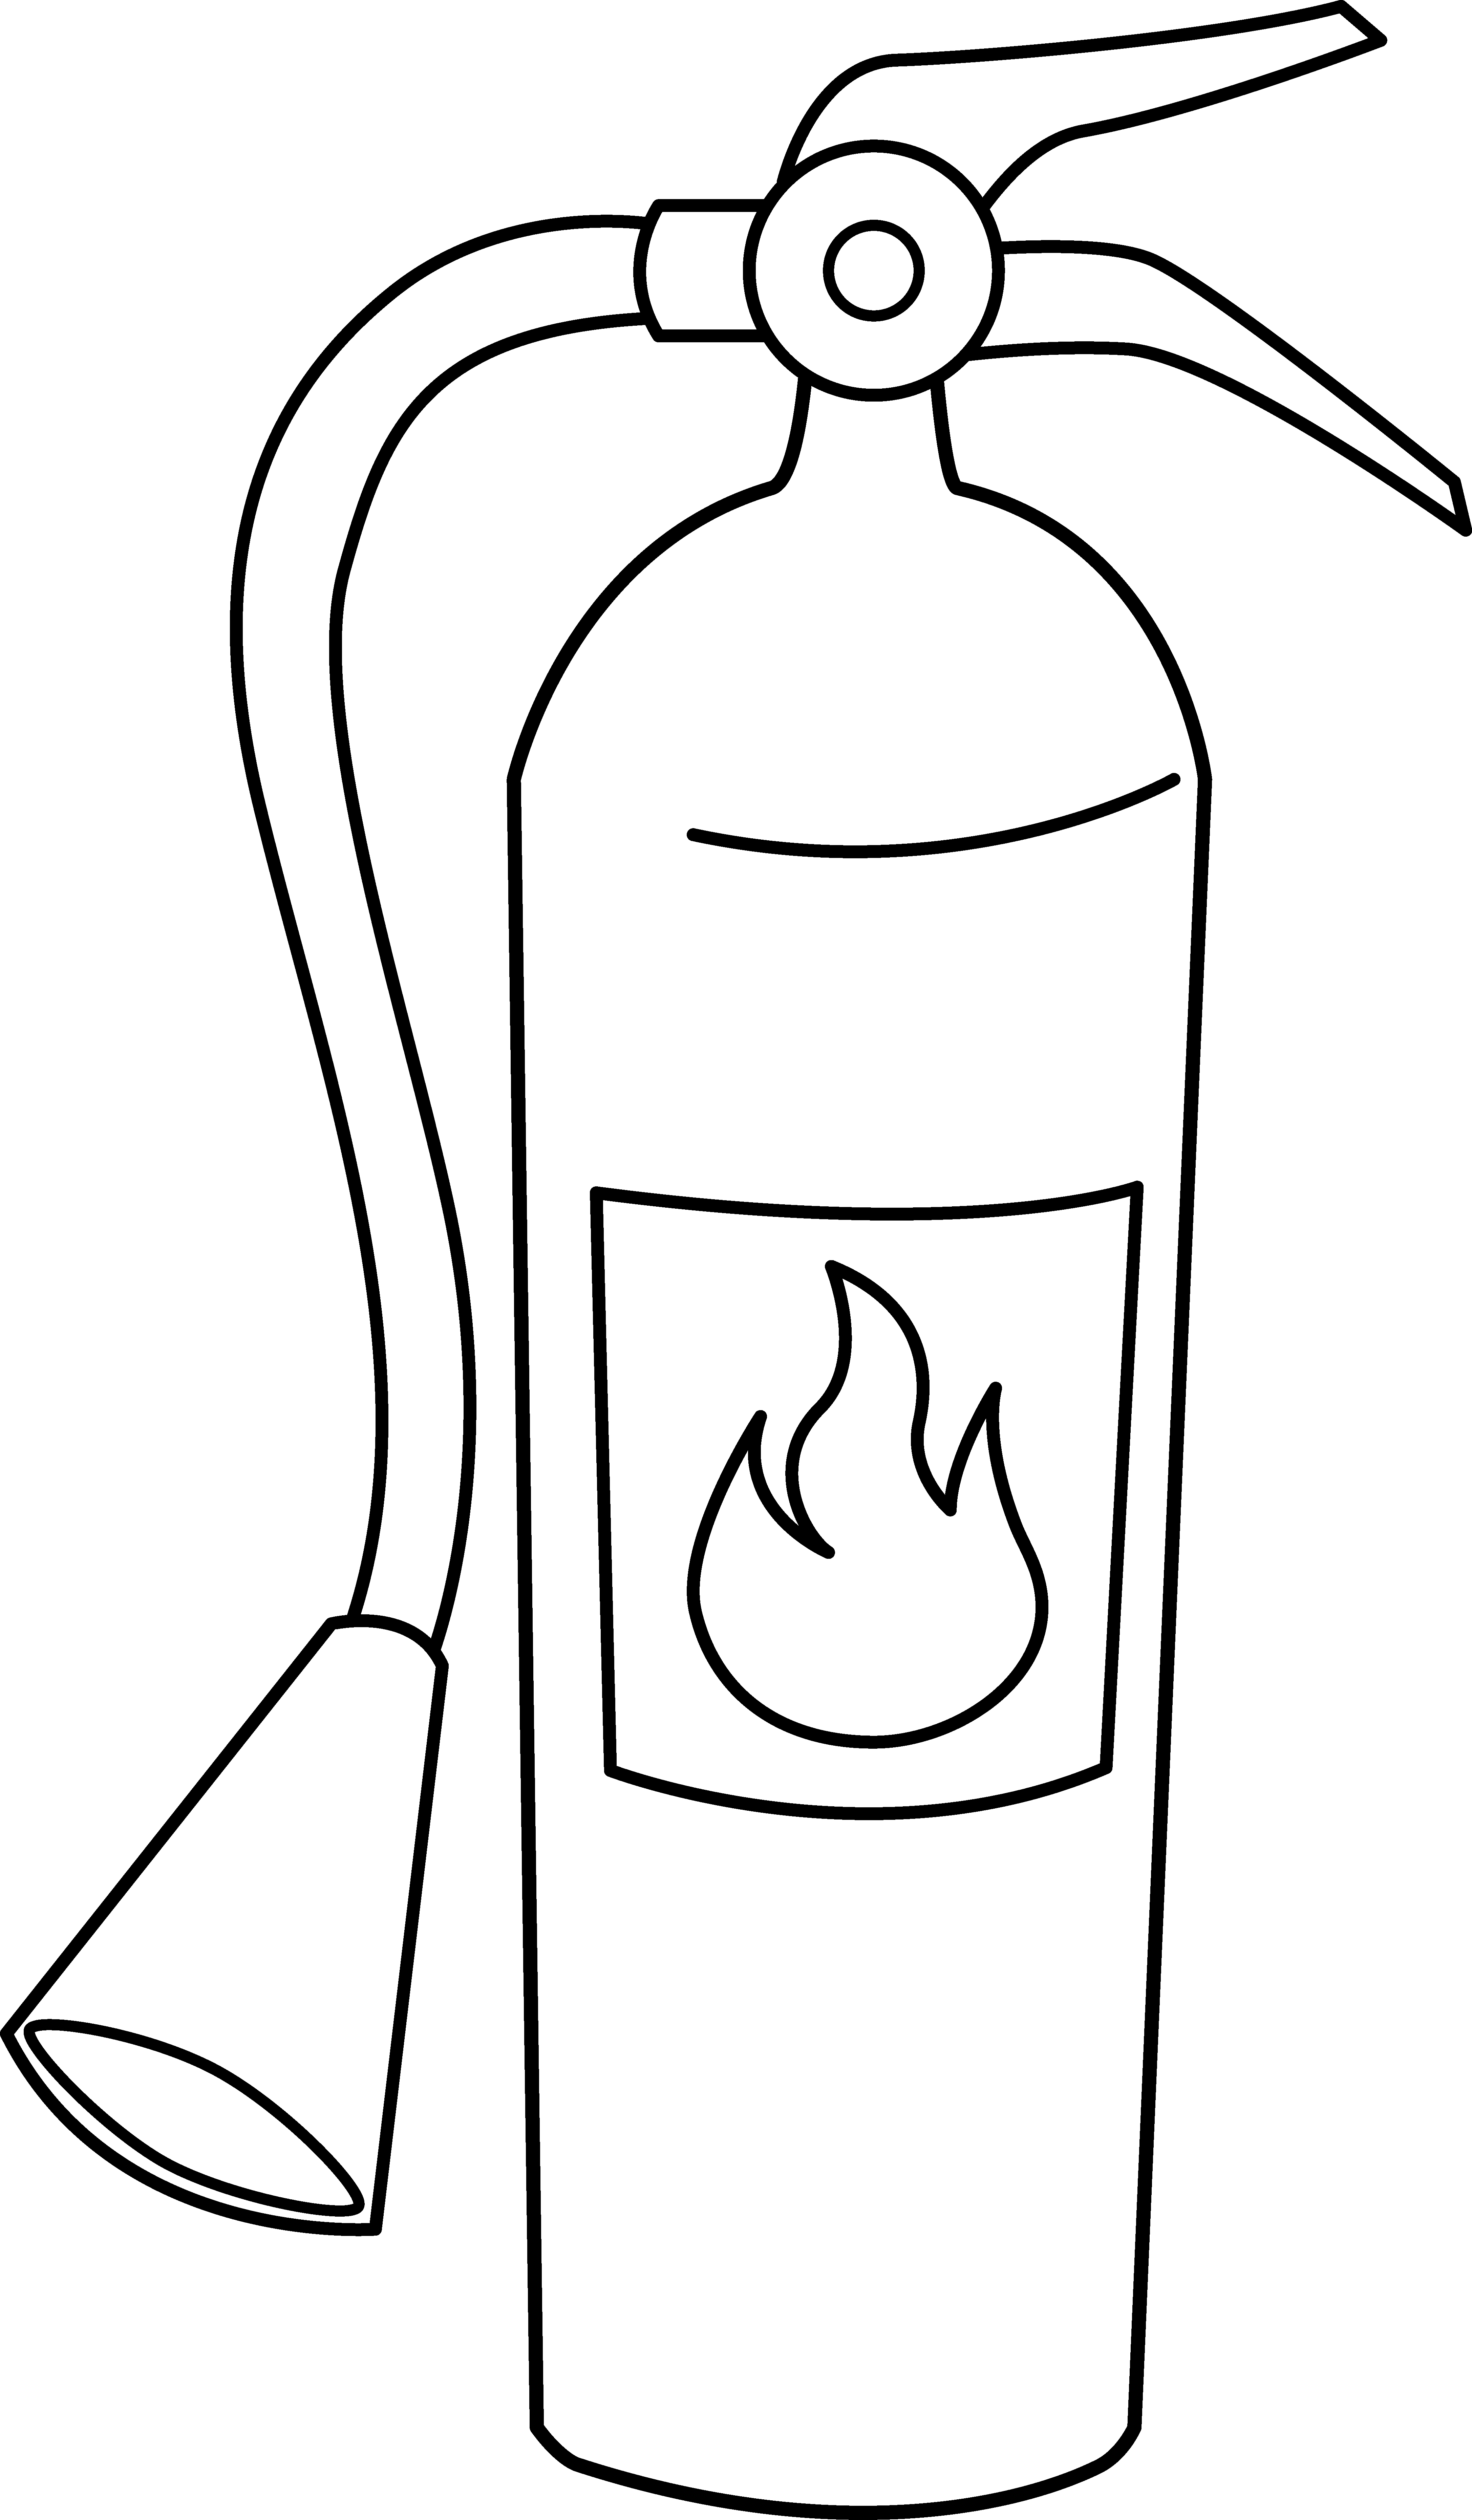 Fire Extinguisher Coloring Pages 2250542 likewise Water Cooler Monthly besides Clear outs also 3 together with Stock Illustration Emergency Exit Icons. on fire extinguisher